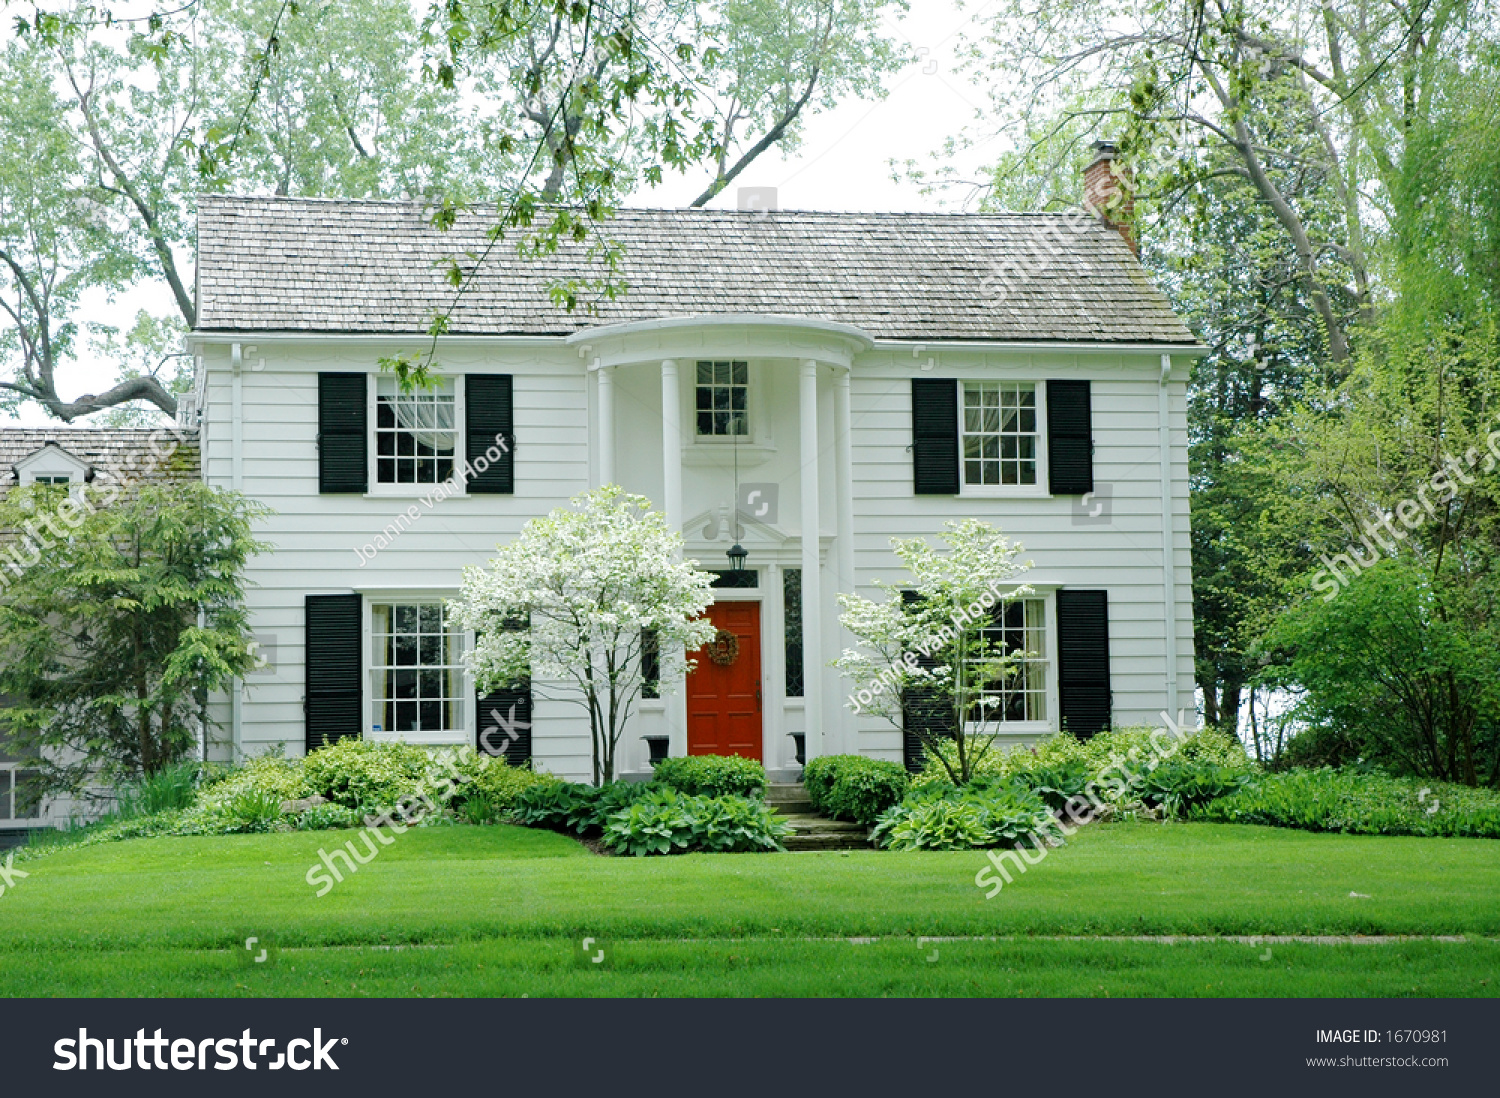 Bright Green House White Fromal House With Siding Black Shutters And Bright Green